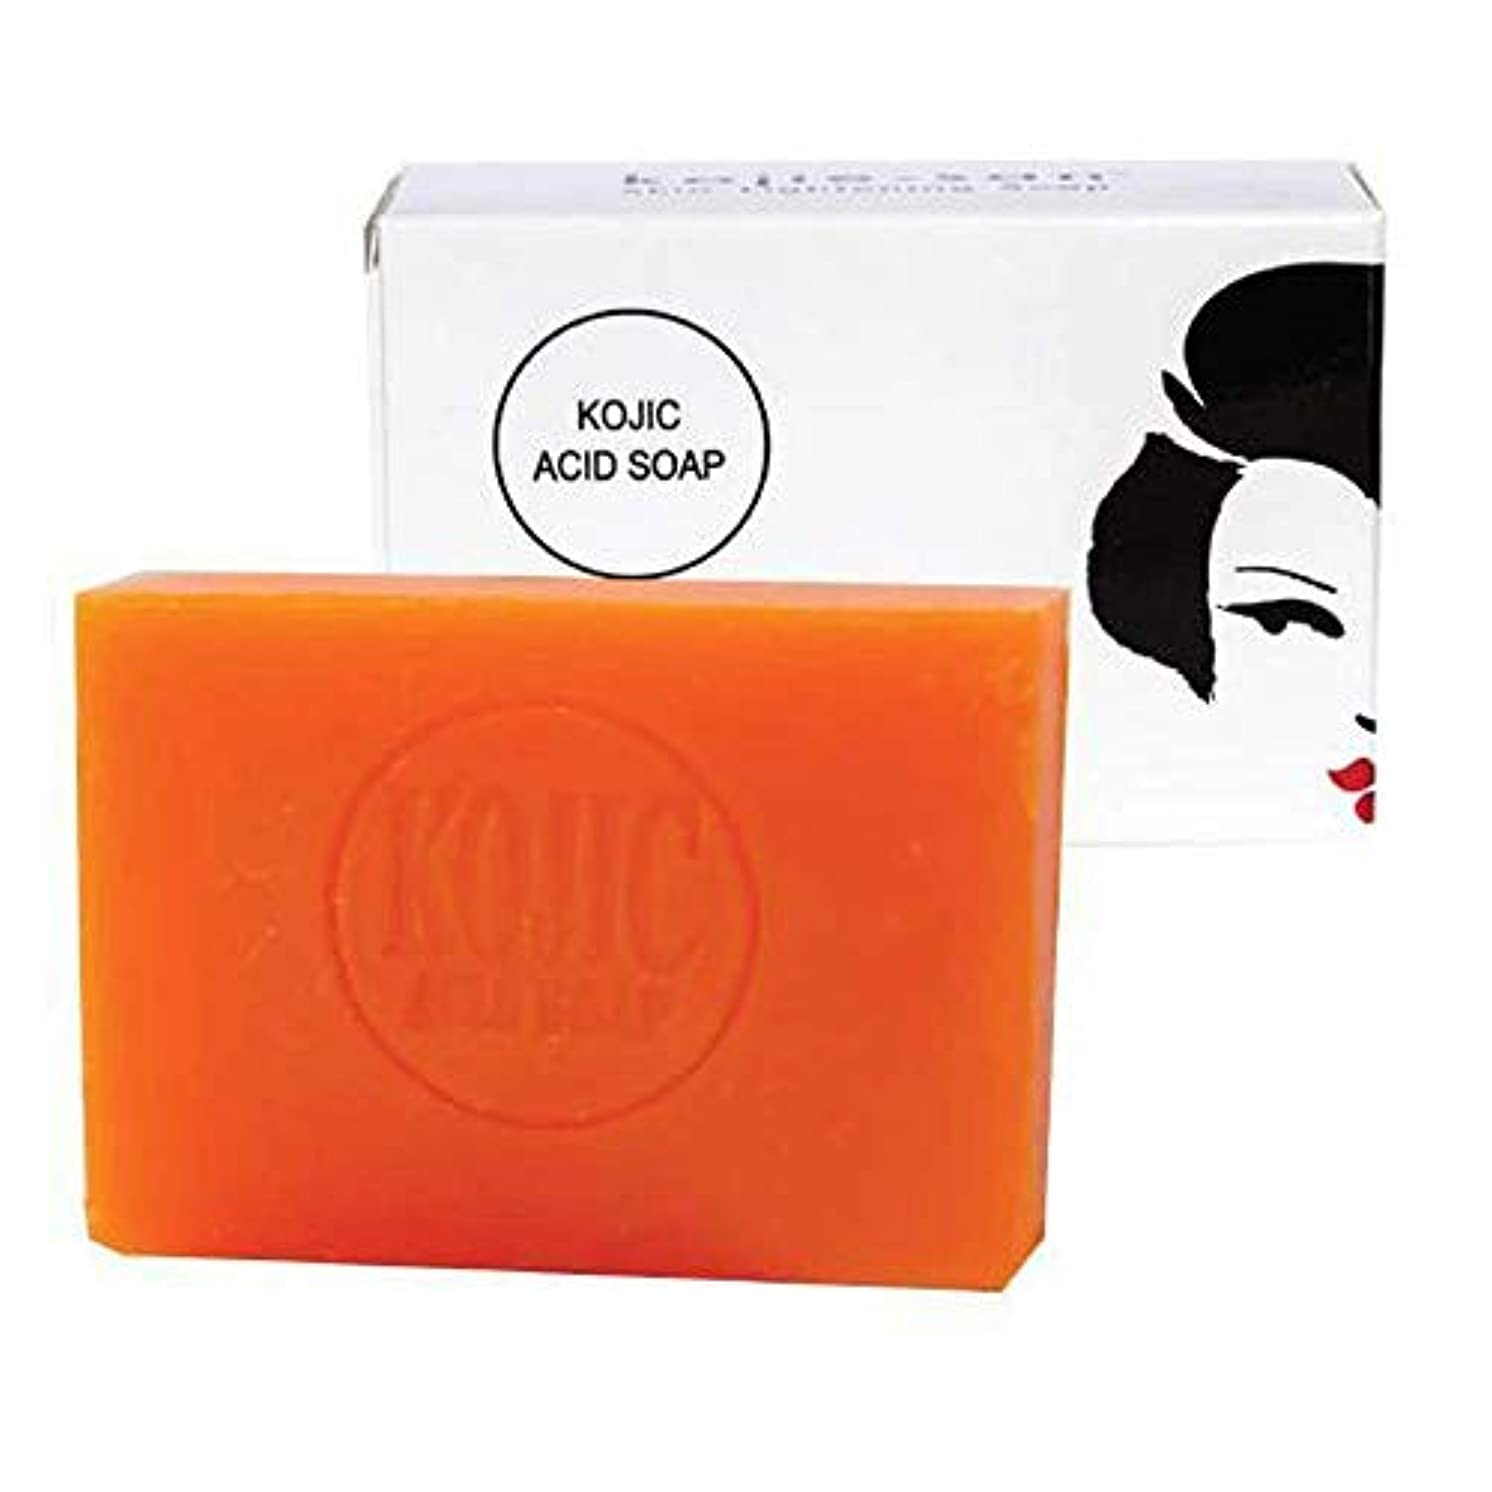 アレンジアクセス柔らかいKojie San Skin Lightening Kojic Acid Soap 2 Bars - 65G Fades Age Spots, Freckles, And Other Signs Of Sun Damage...